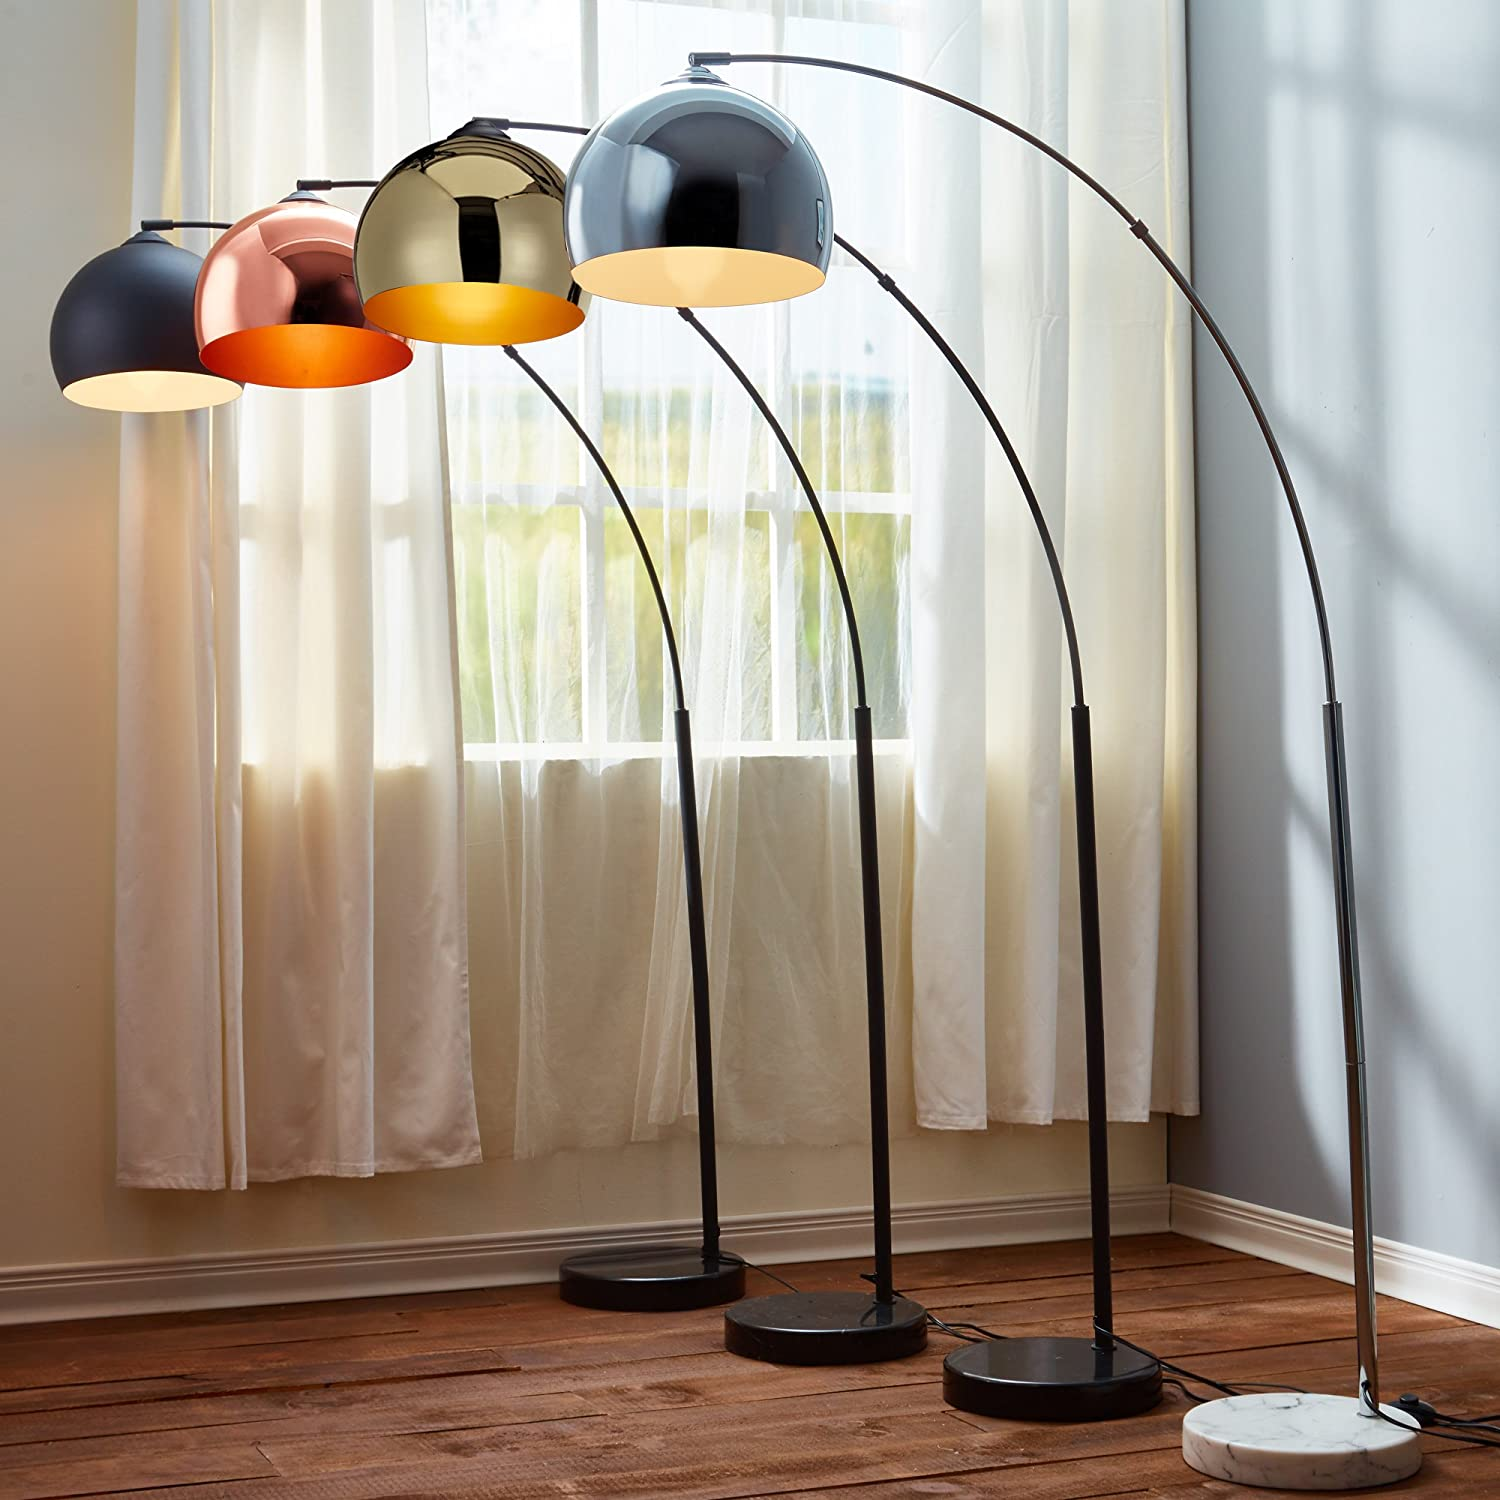 Versanora VN-L00011 Arquer Modern Arc Floor Lamp 67 inch Tall Standing Hanging Light with Rose Gold Finished Shade and Black Marble Base for Living Room Reading Bedroom Office Gold